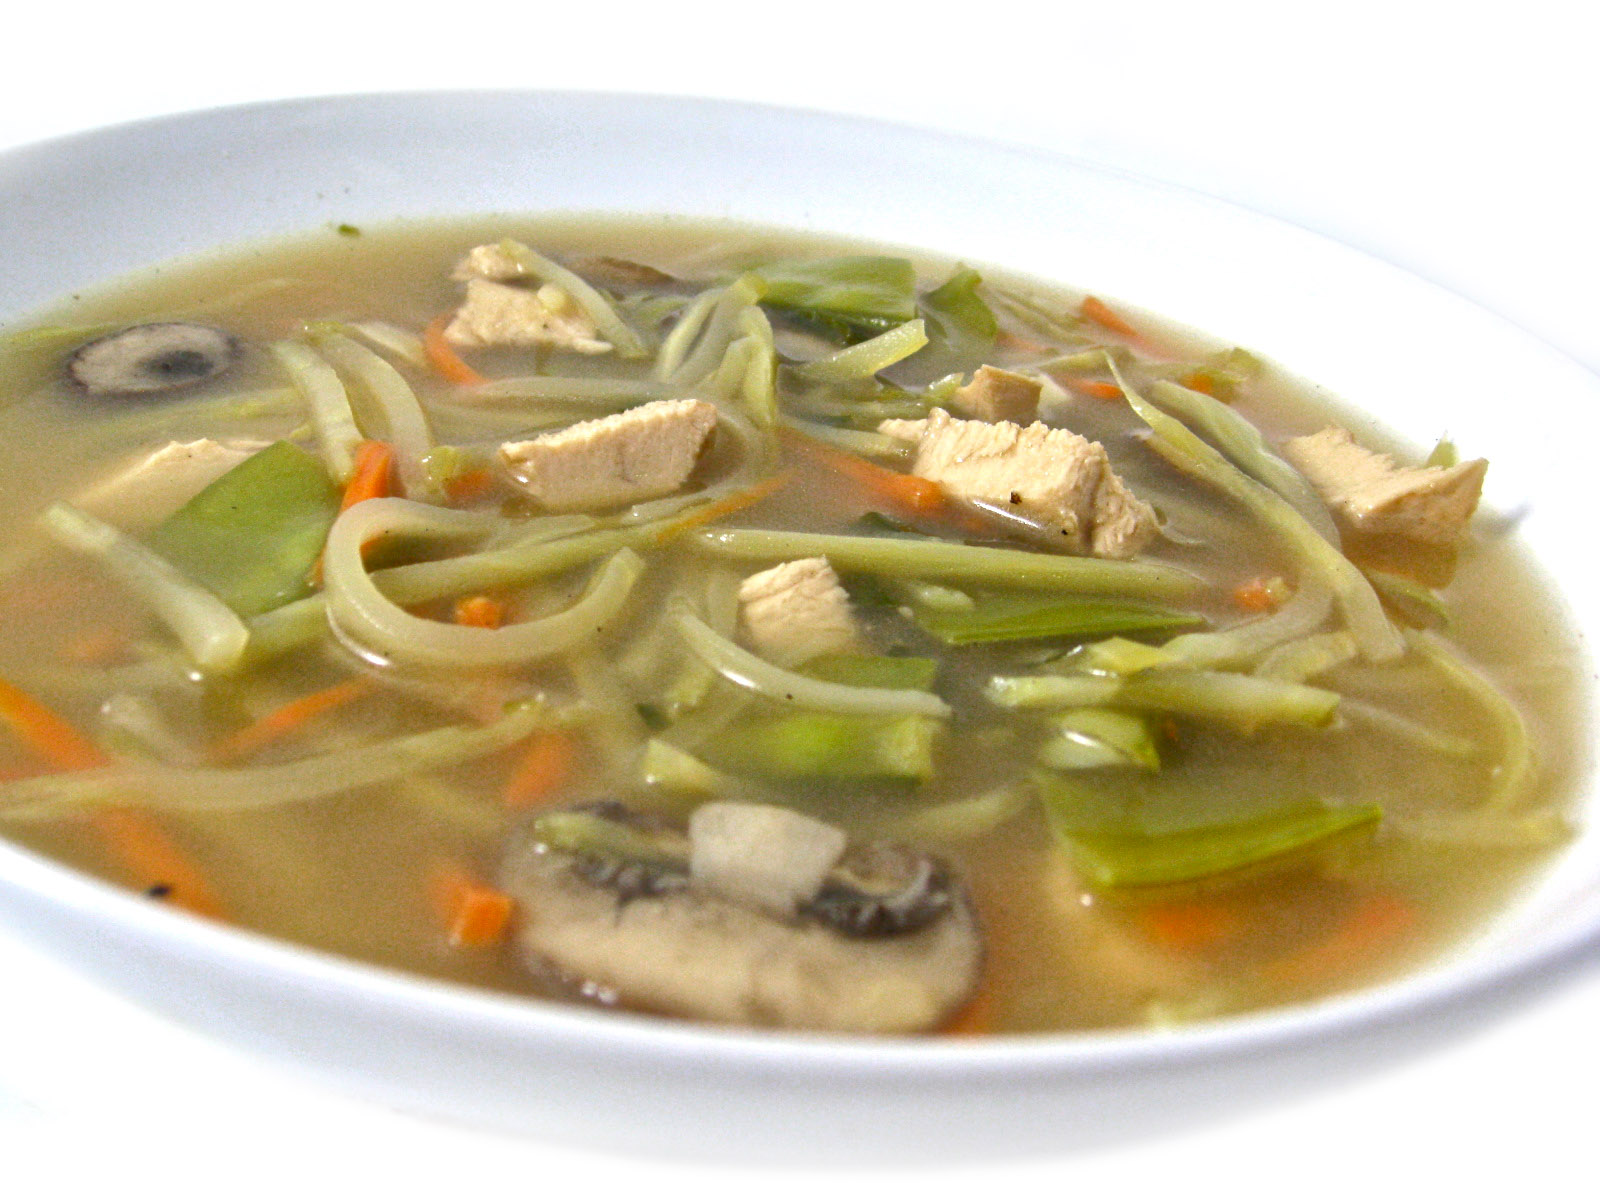 I M In Love With This Soup And I M Pretty Sure You Ll Love It Too It Has A Fabulous Flavorful Broth And Is Chock Full Of High Fiber Vegetables